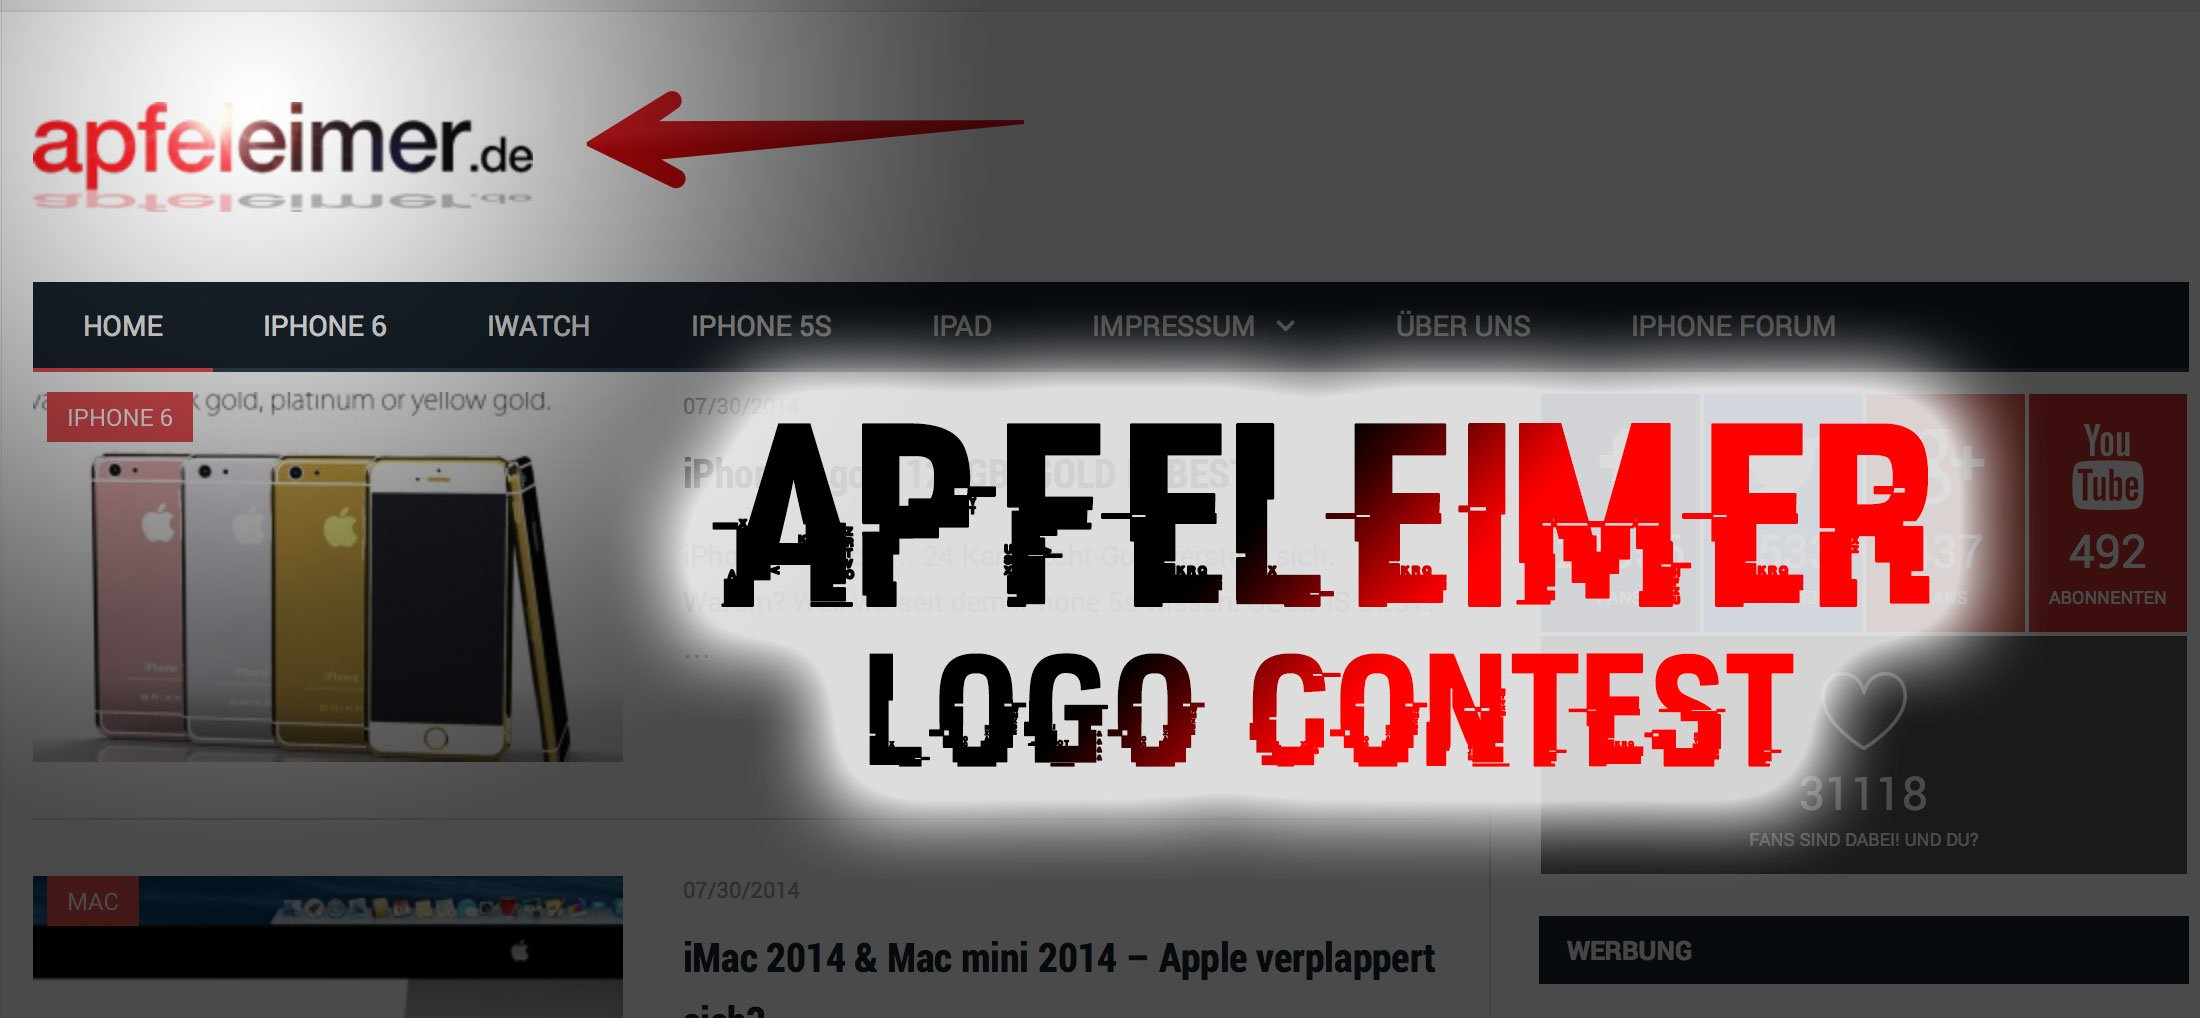 Neues Apfeleimer Apple News Logo! 6